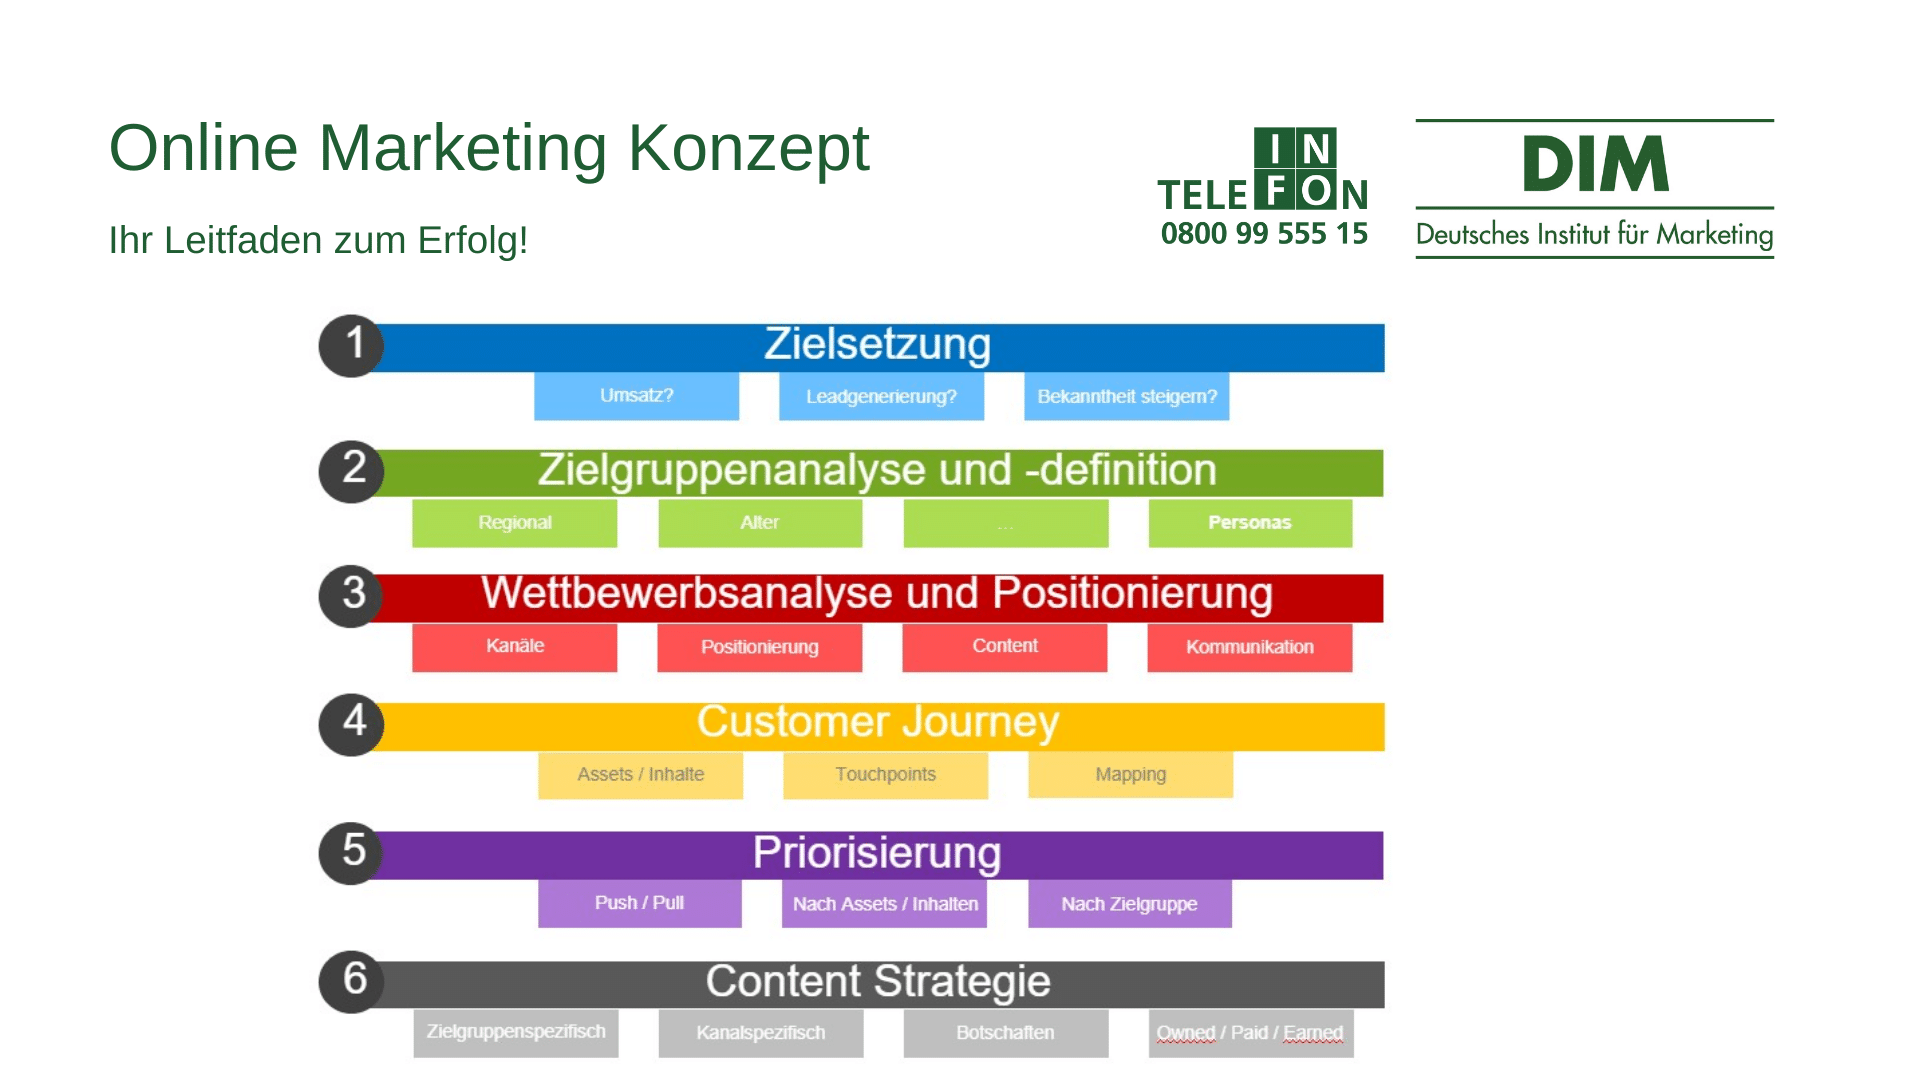 Online Marketing Konzept